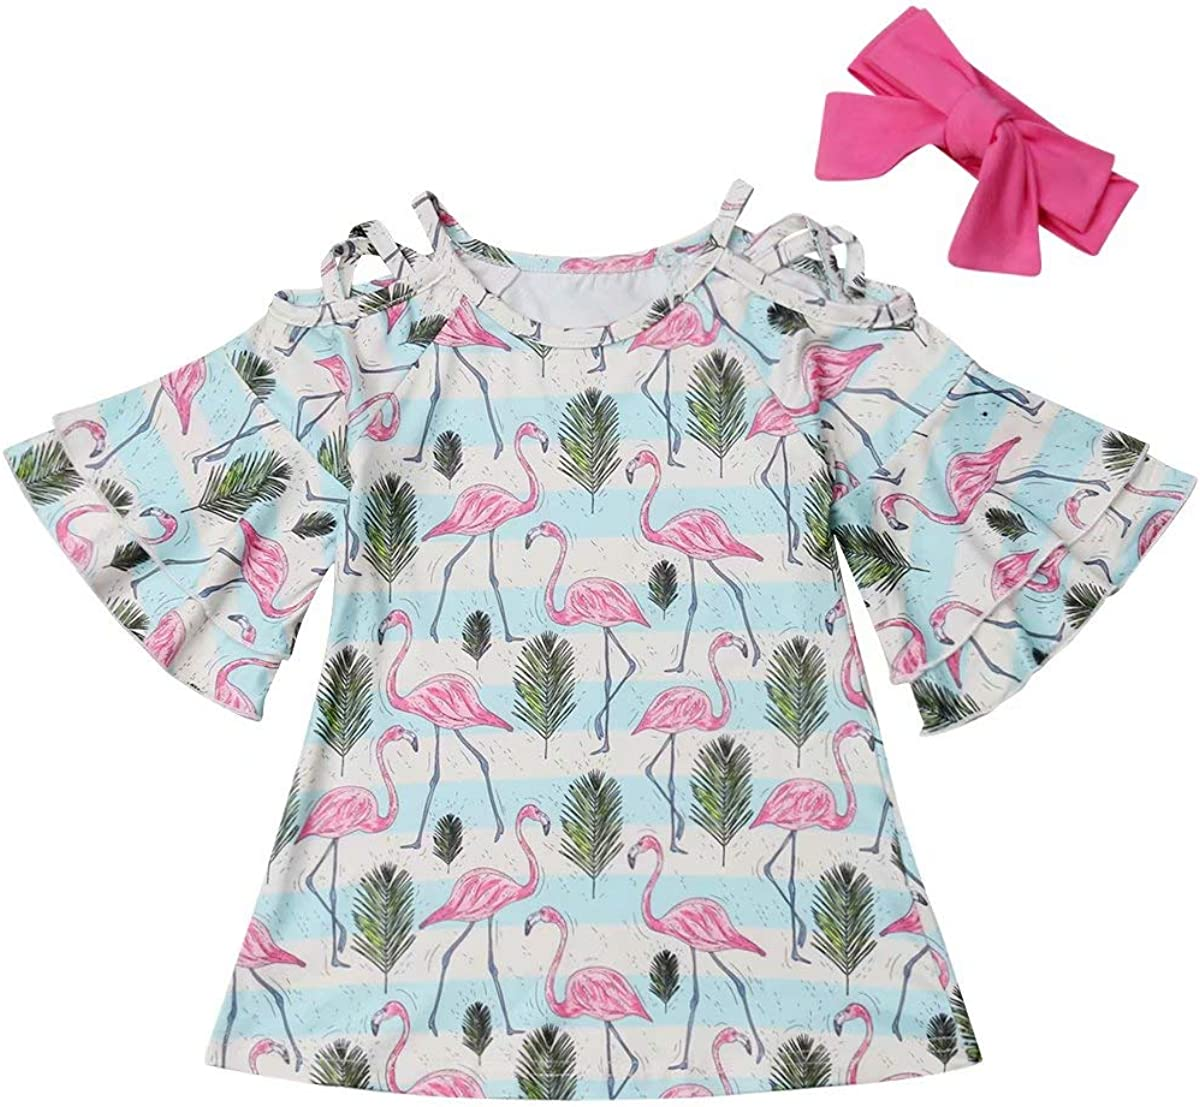 Kids Toddler Baby Girls 2Pcs Outfit Flamingo Flare Sleeve Off Shoulder Dresses Headband Clothes Set